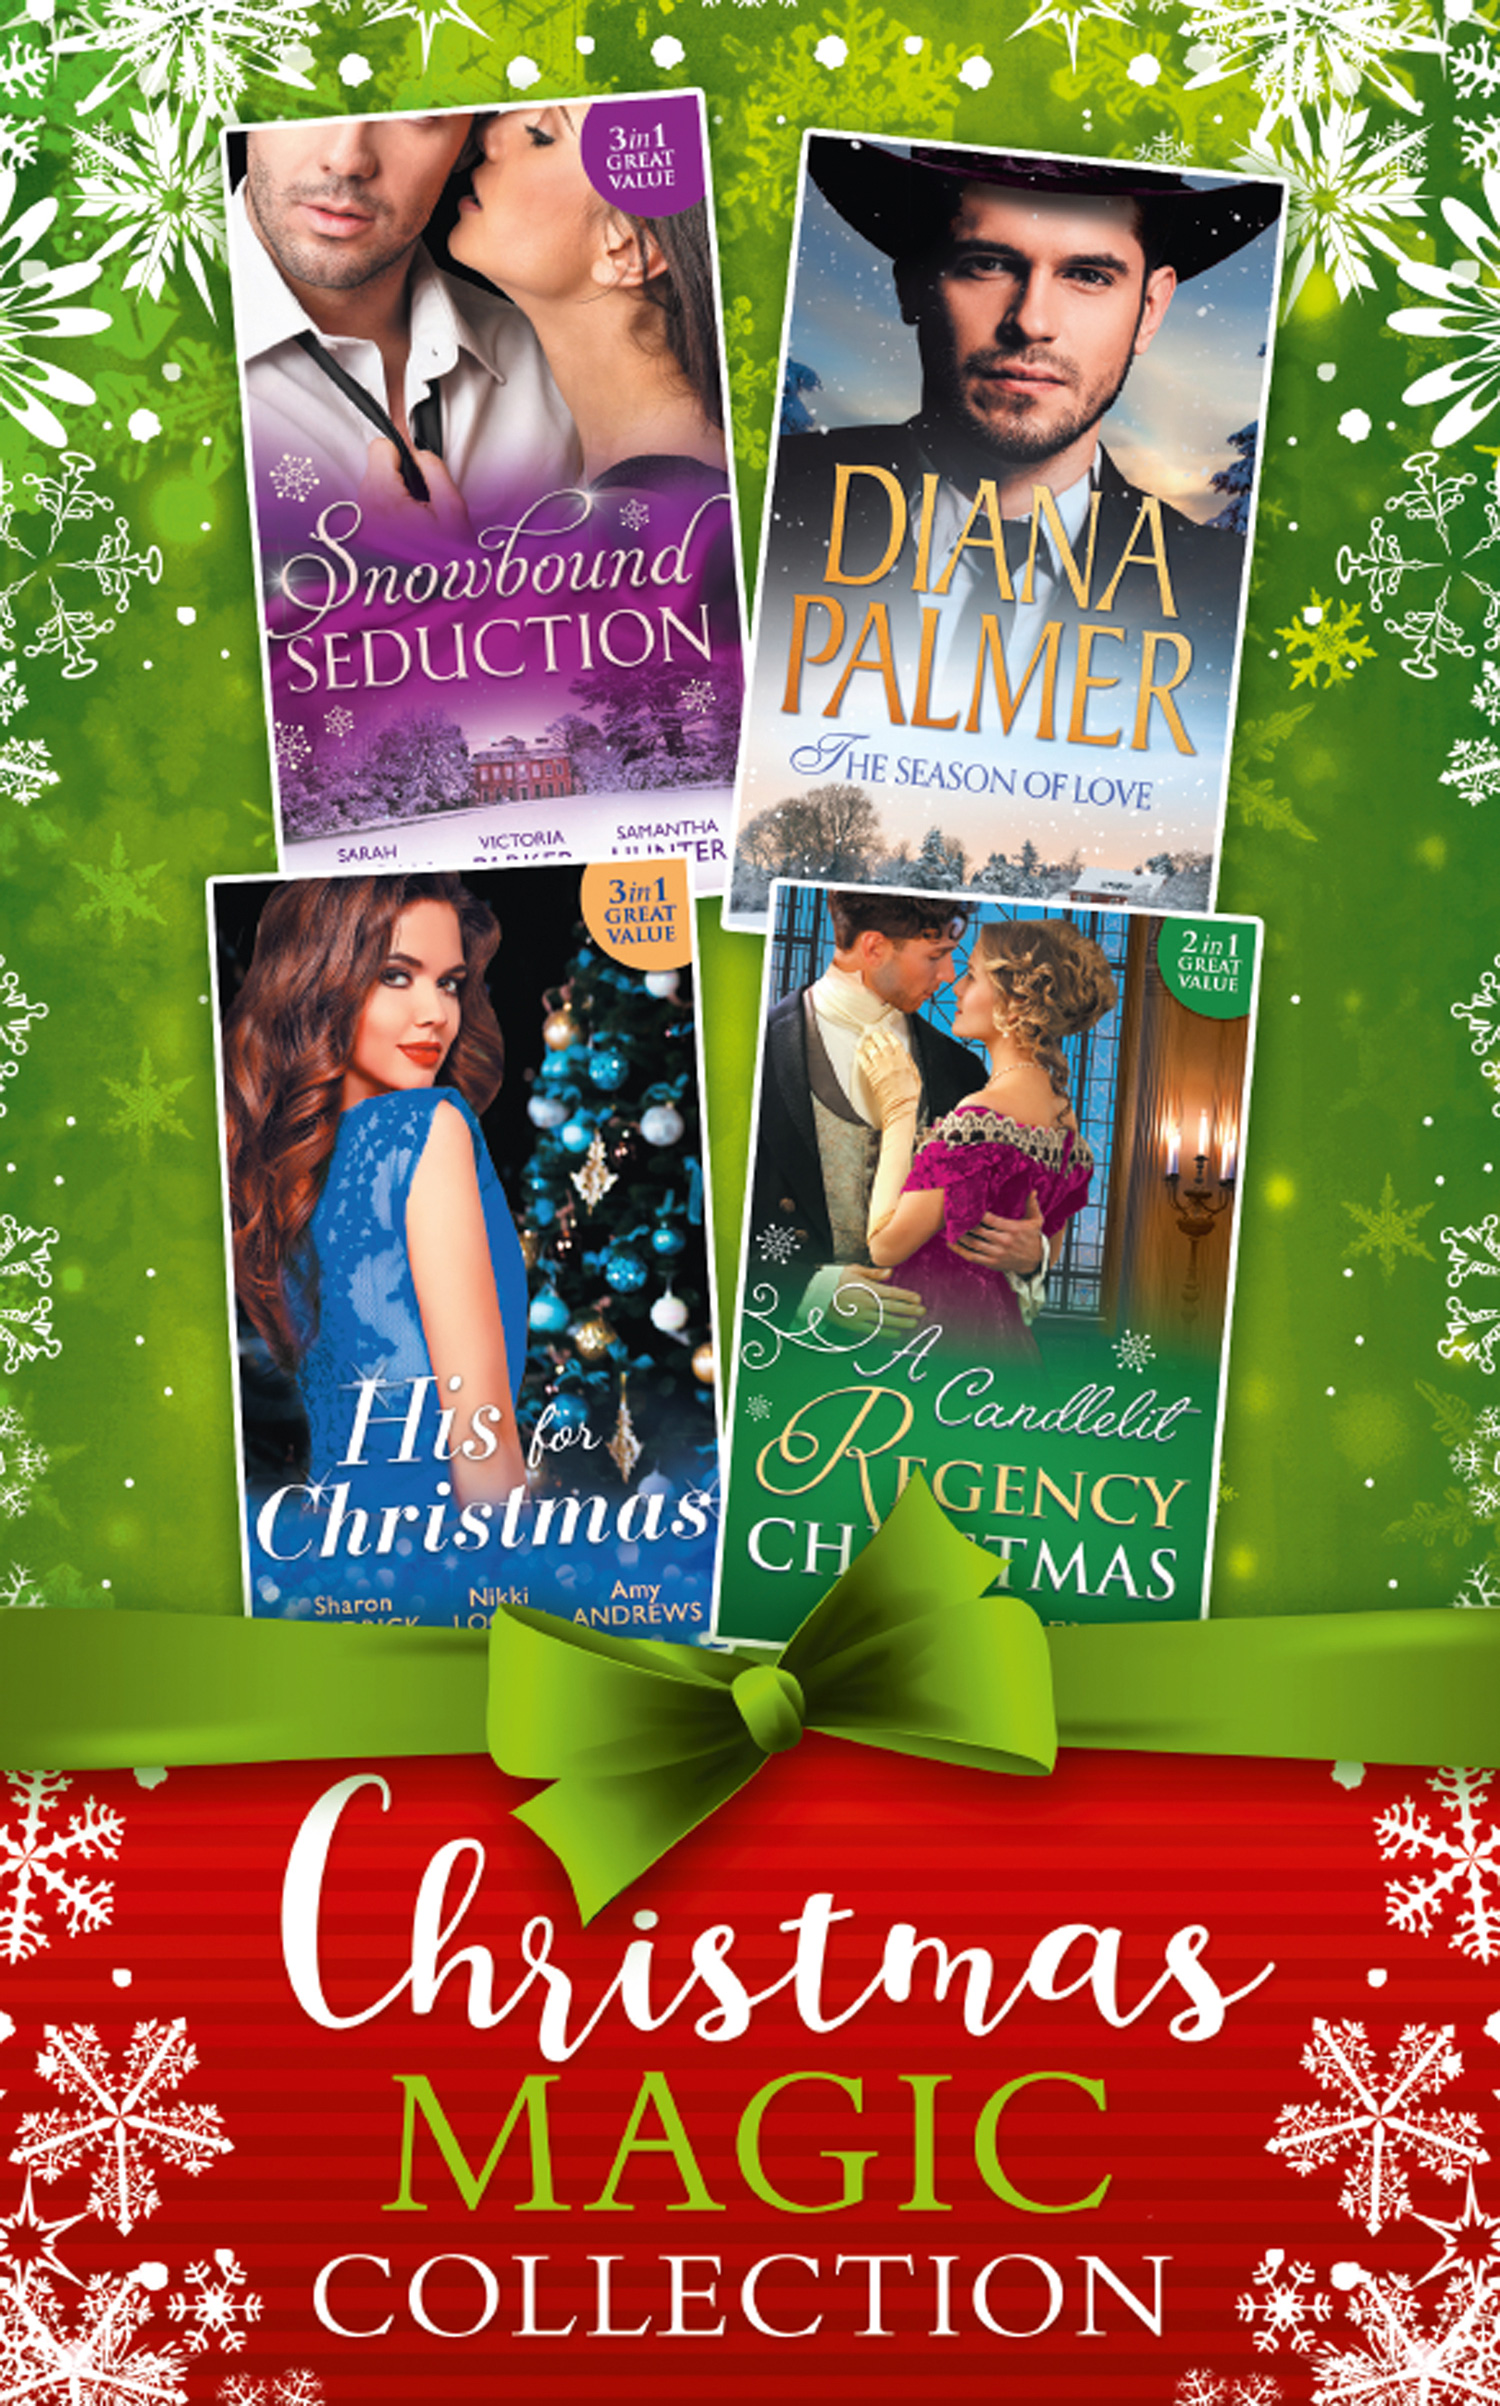 Mills & Boon Christmas Magic Collection